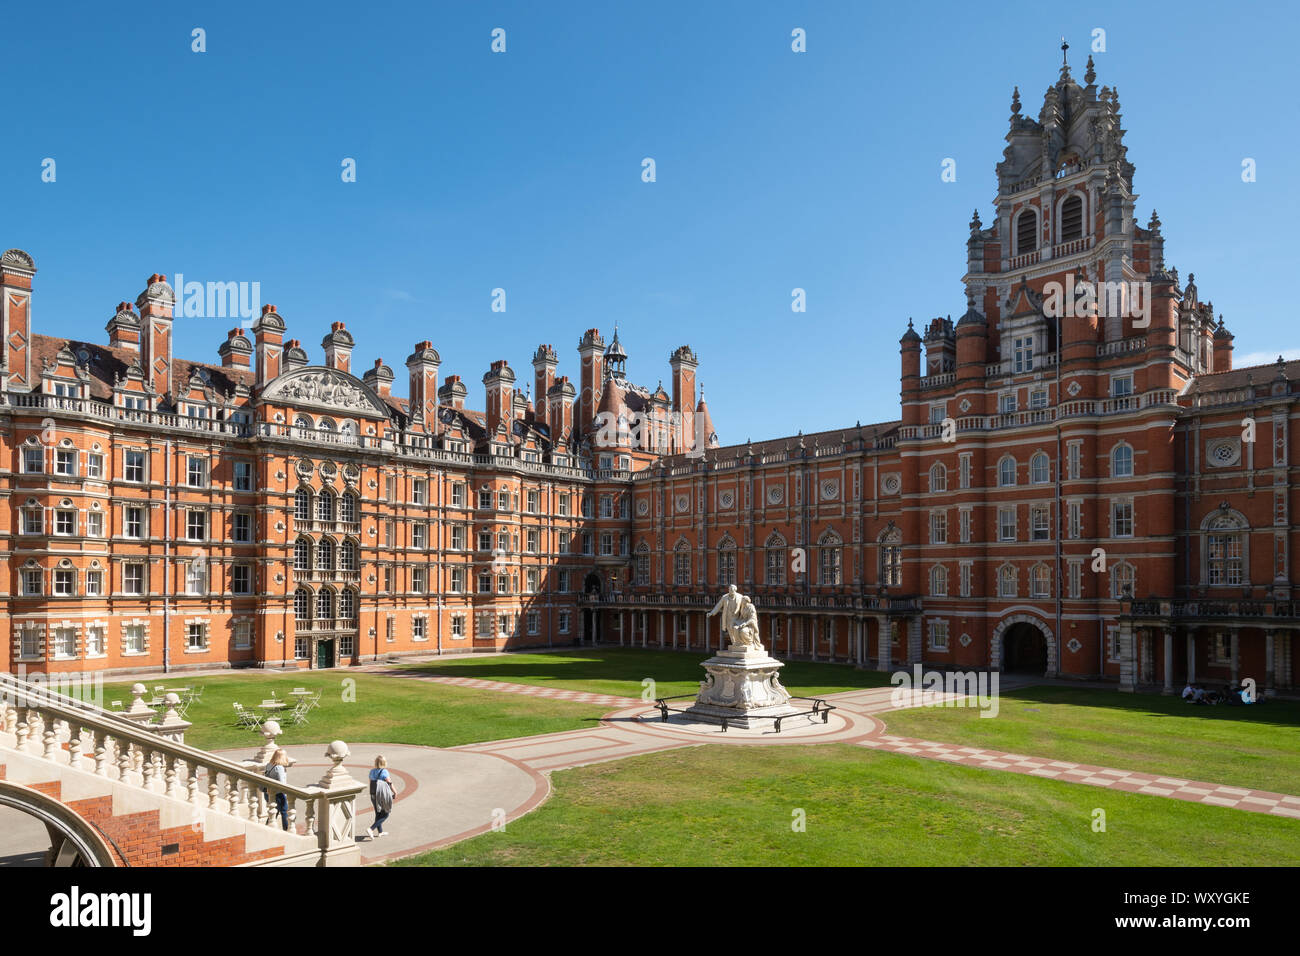 the-historic-founders-building-at-royal-holloway-college-in-surrey-uk-part-of-the-university-of-london-and-originally-a-college-to-educate-women-WXYGKE.jpg